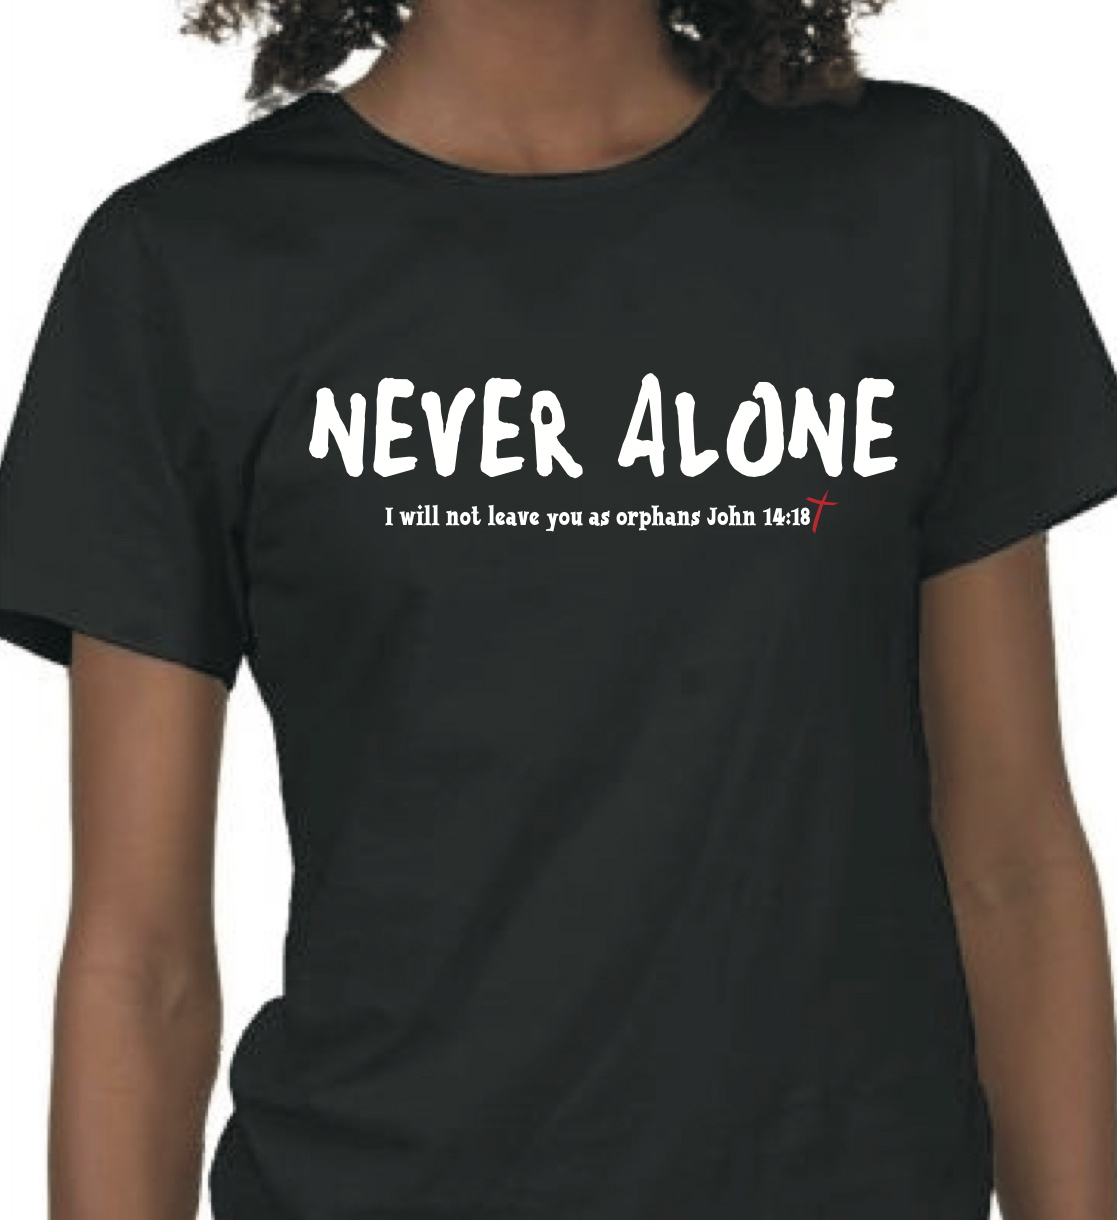 blessings a hundred fold never alone t shirt fundraiser